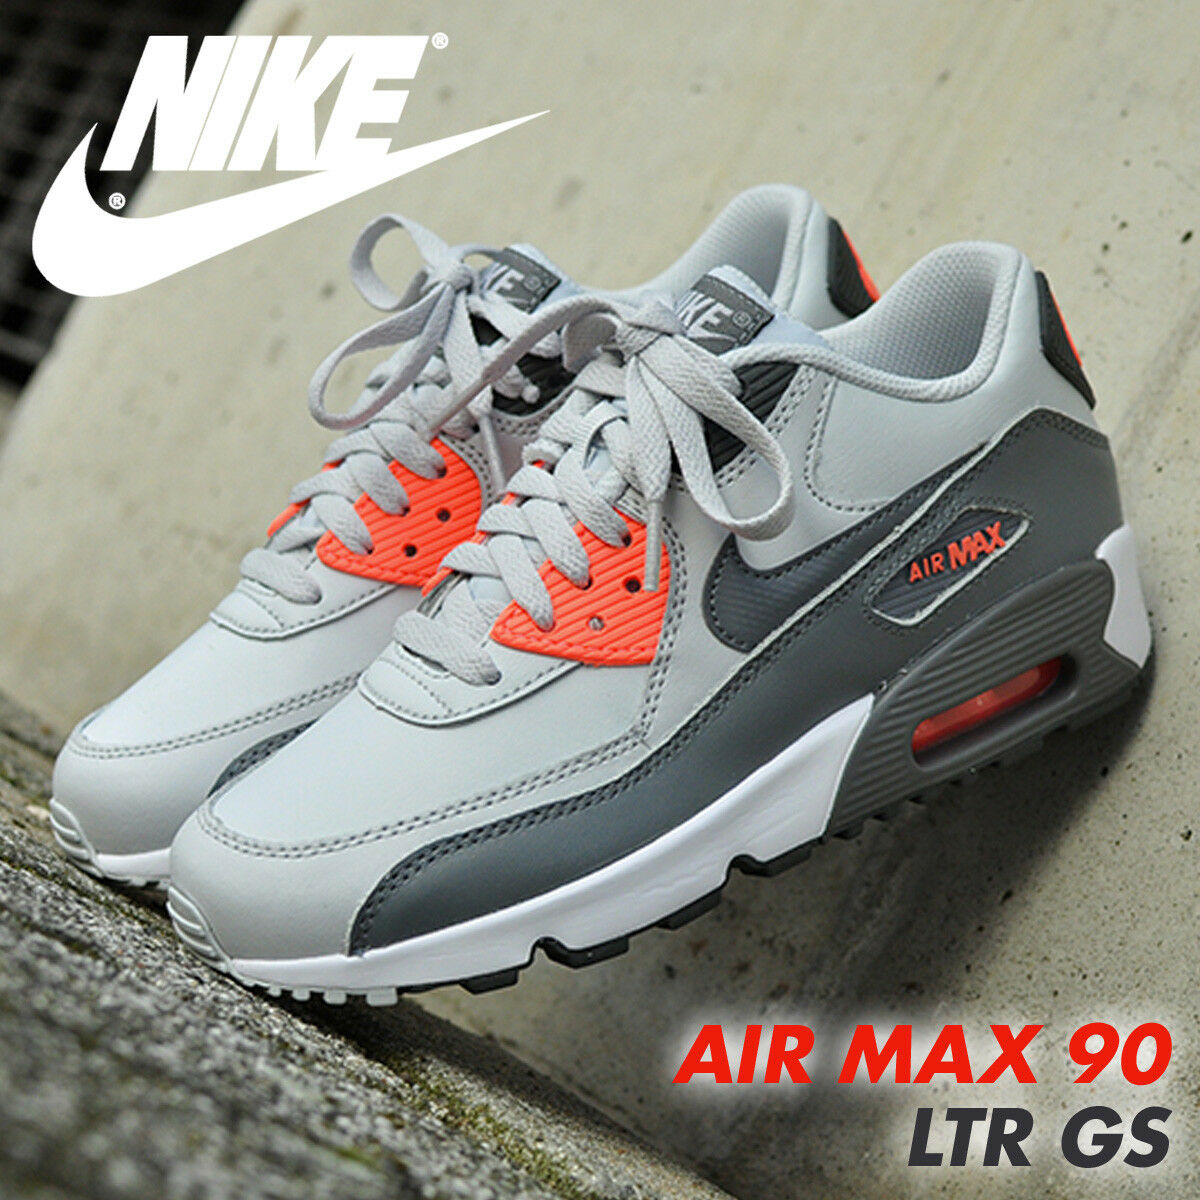 NIKE AIR MAX 90 GS WOMEN NEW with BOX!!!!